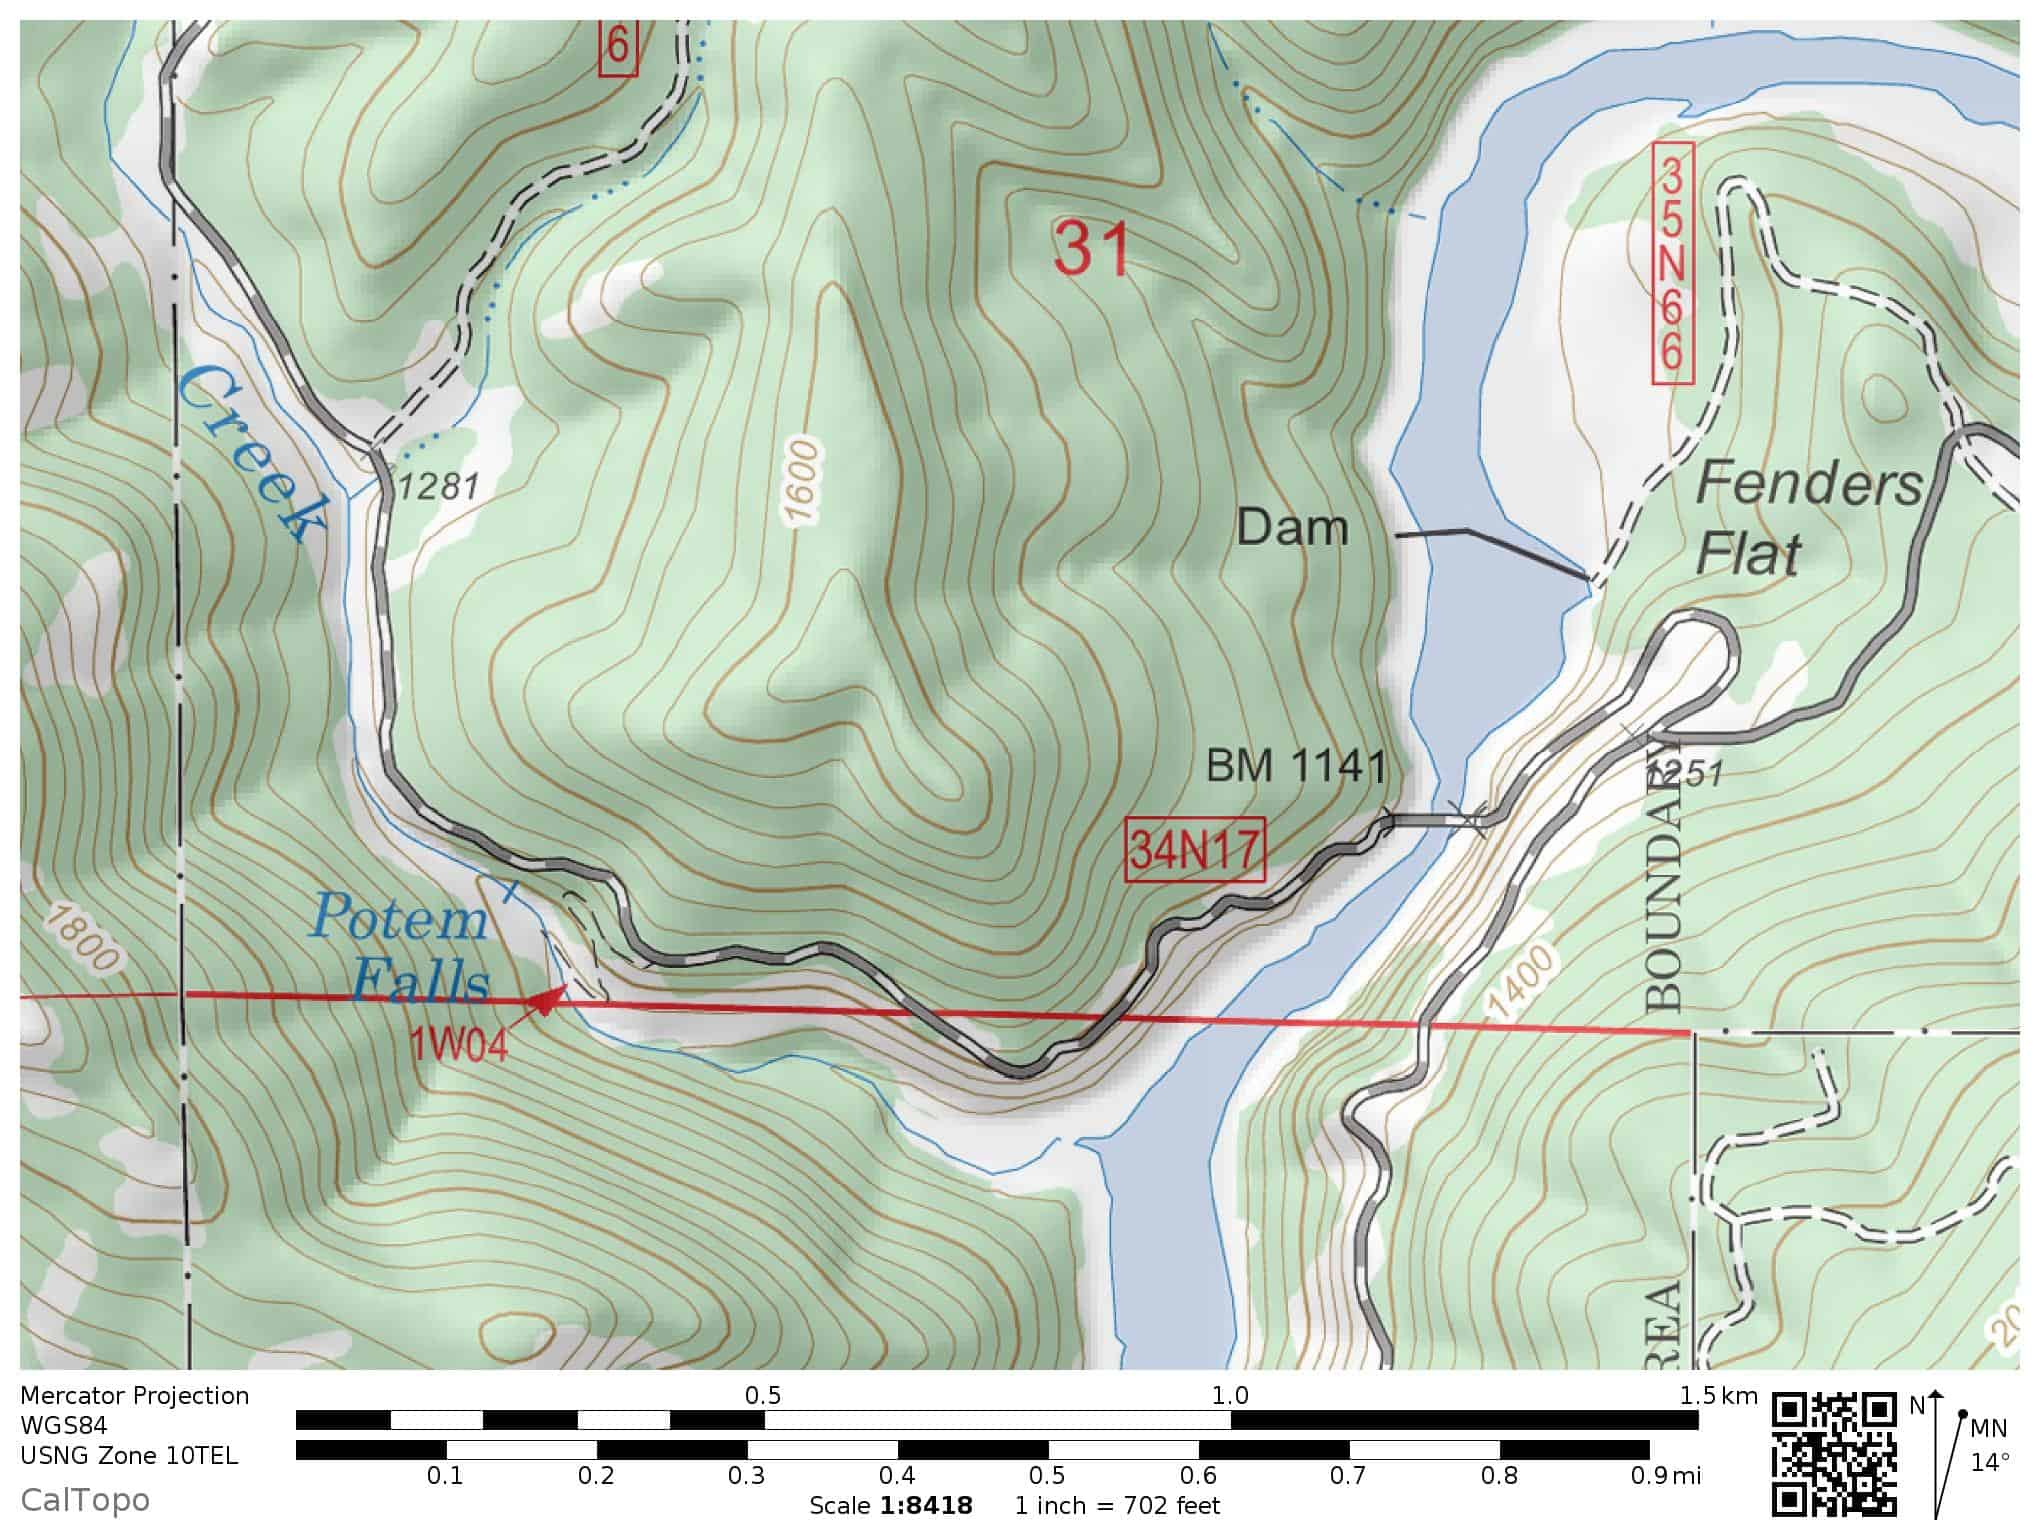 Potem Falls hiking trail map: Potem Creek, Shasta-Trinity National Forest near Shasta Lake National Recreation Area. Includes Pit River and Fenders Flat.